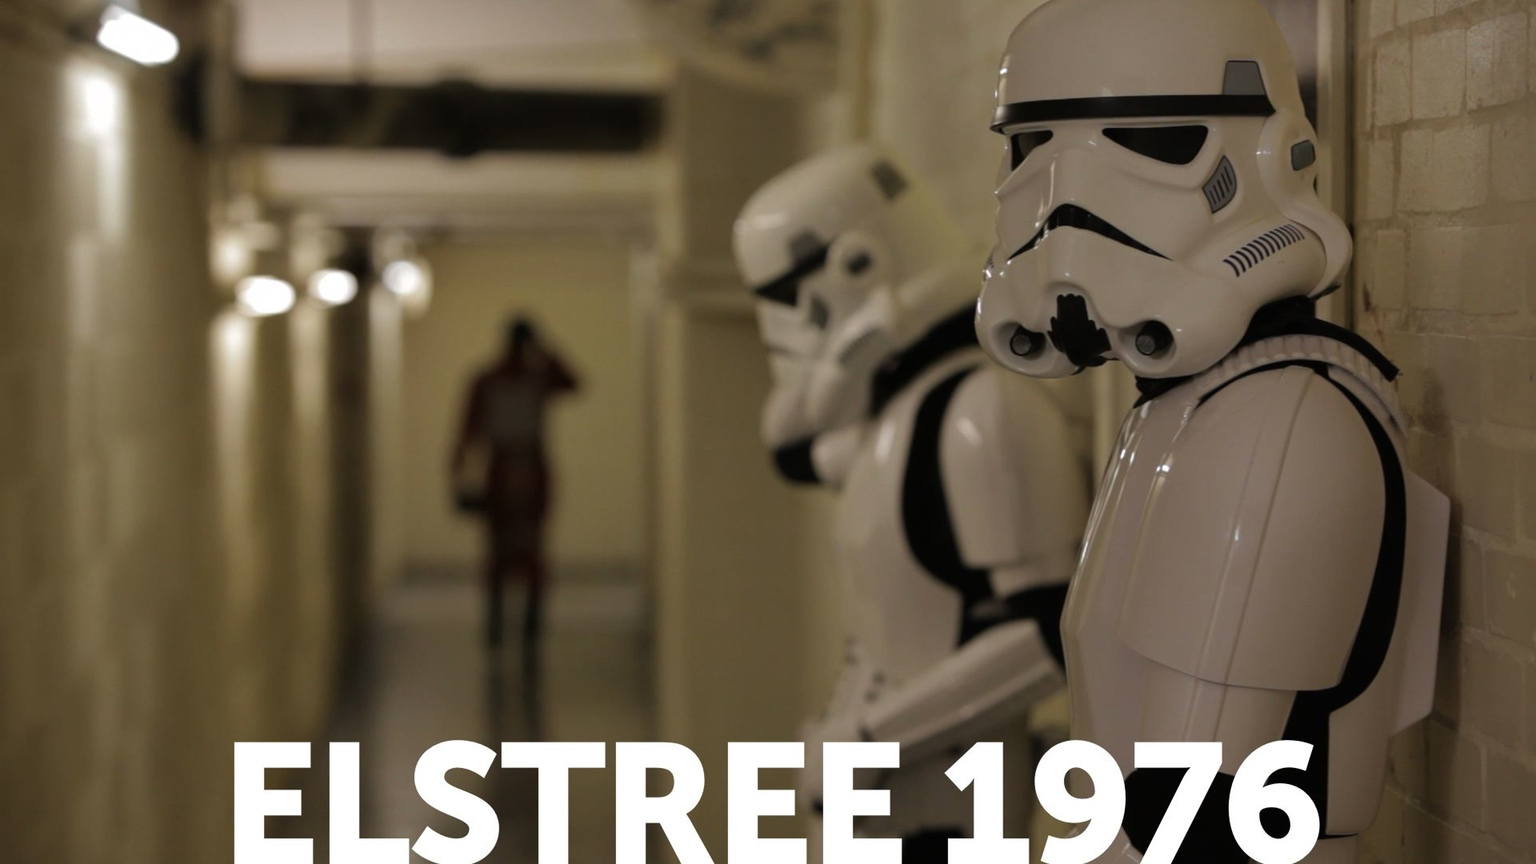 Reviewing Elstree 1976